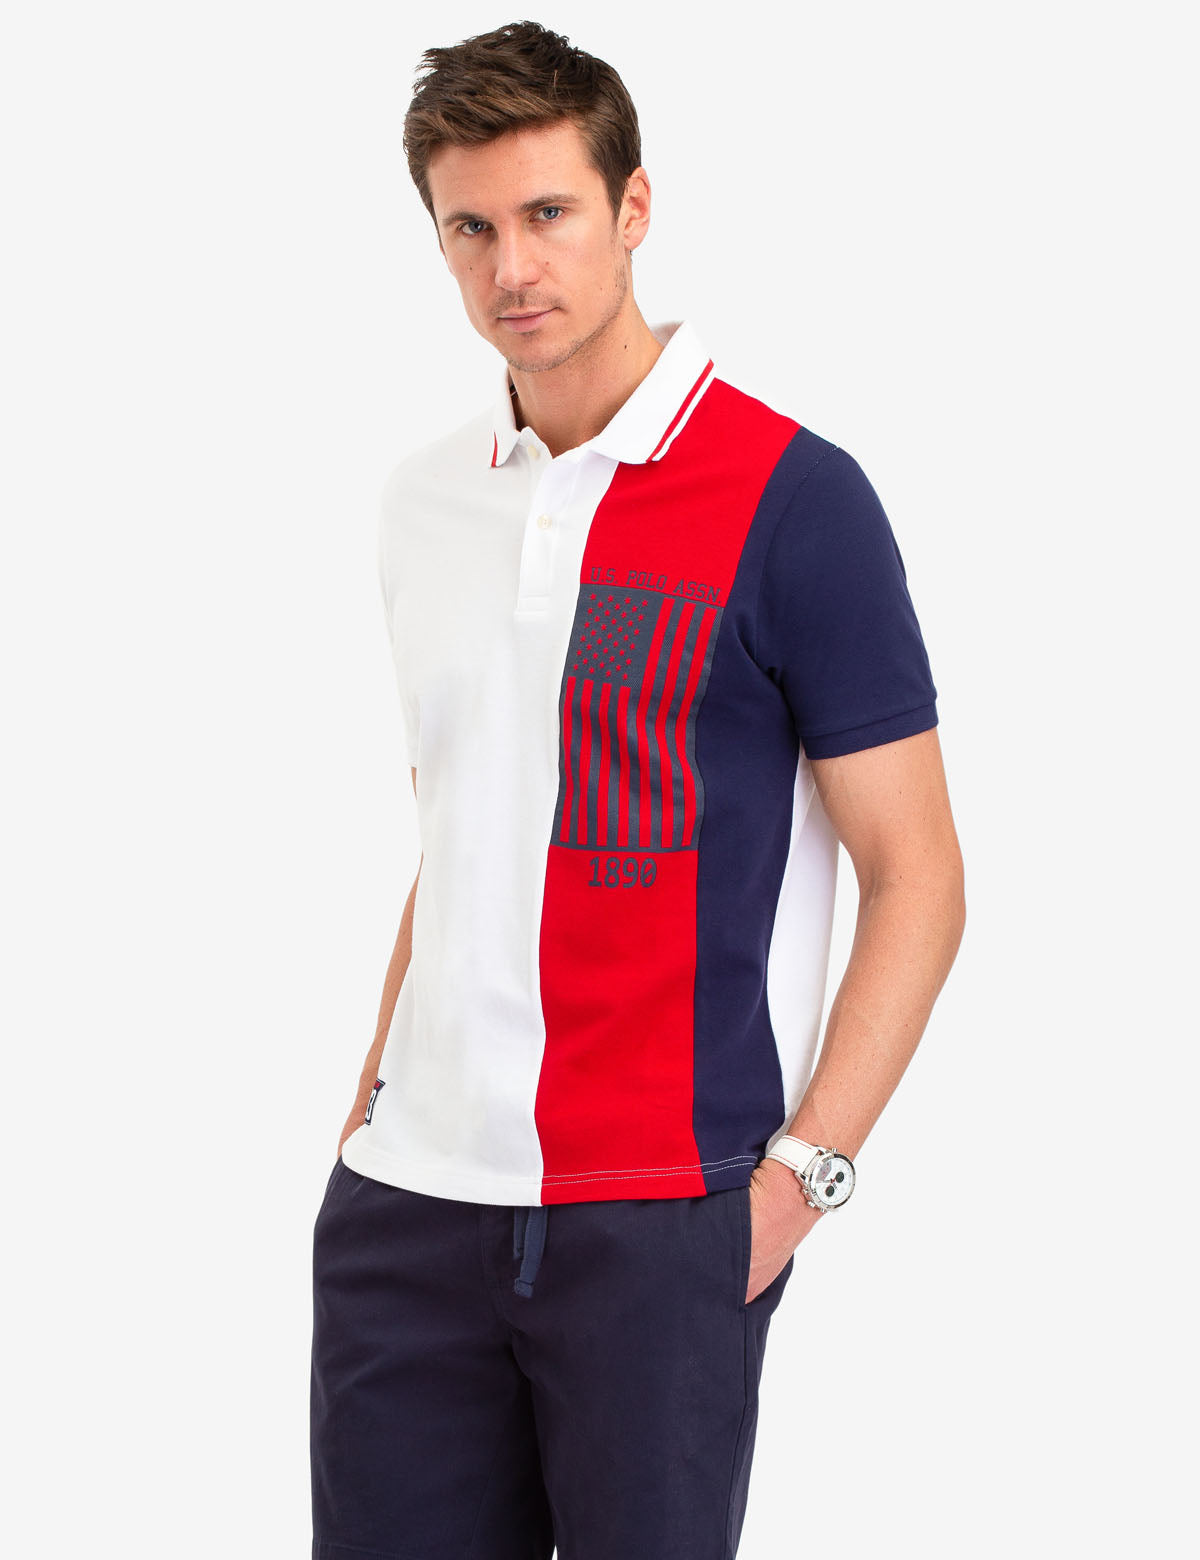 USPA FLAG VERTICAL STRIPE POLO SHIRT - U.S. Polo Assn.